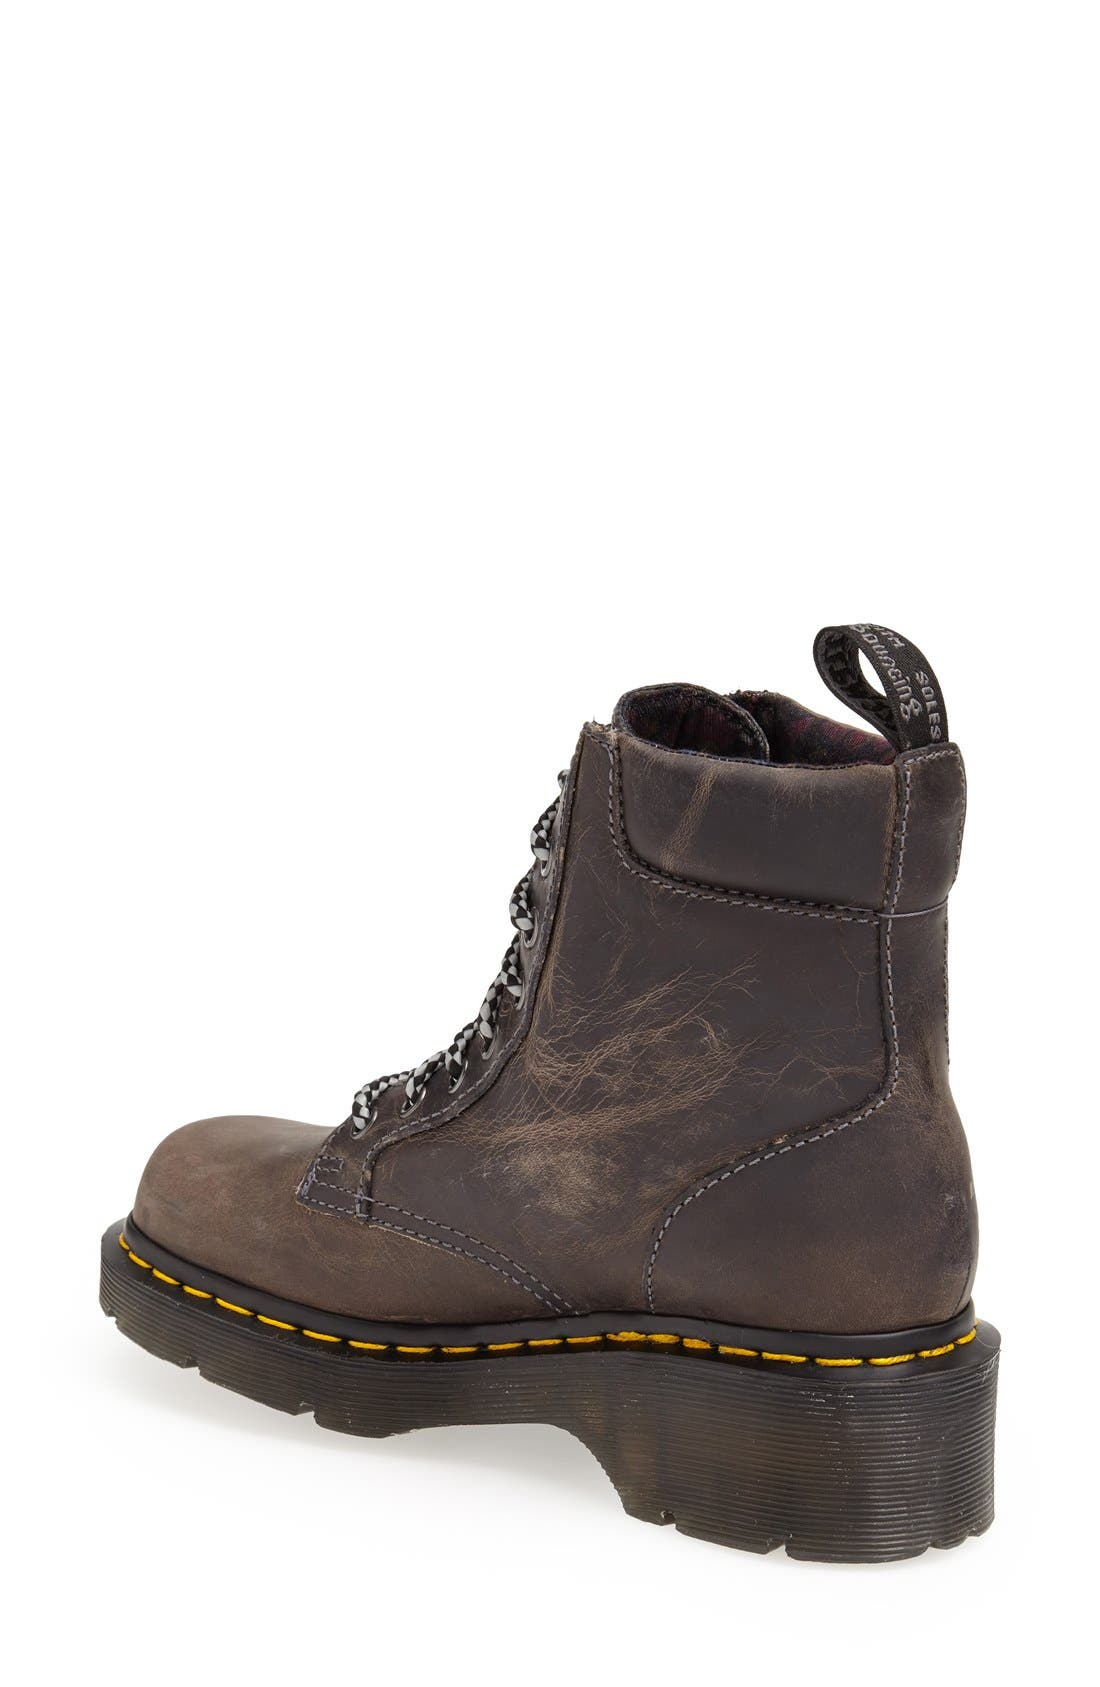 Alternate Image 2  - Dr. Martens 'Dharma' Leather Boot (Women)